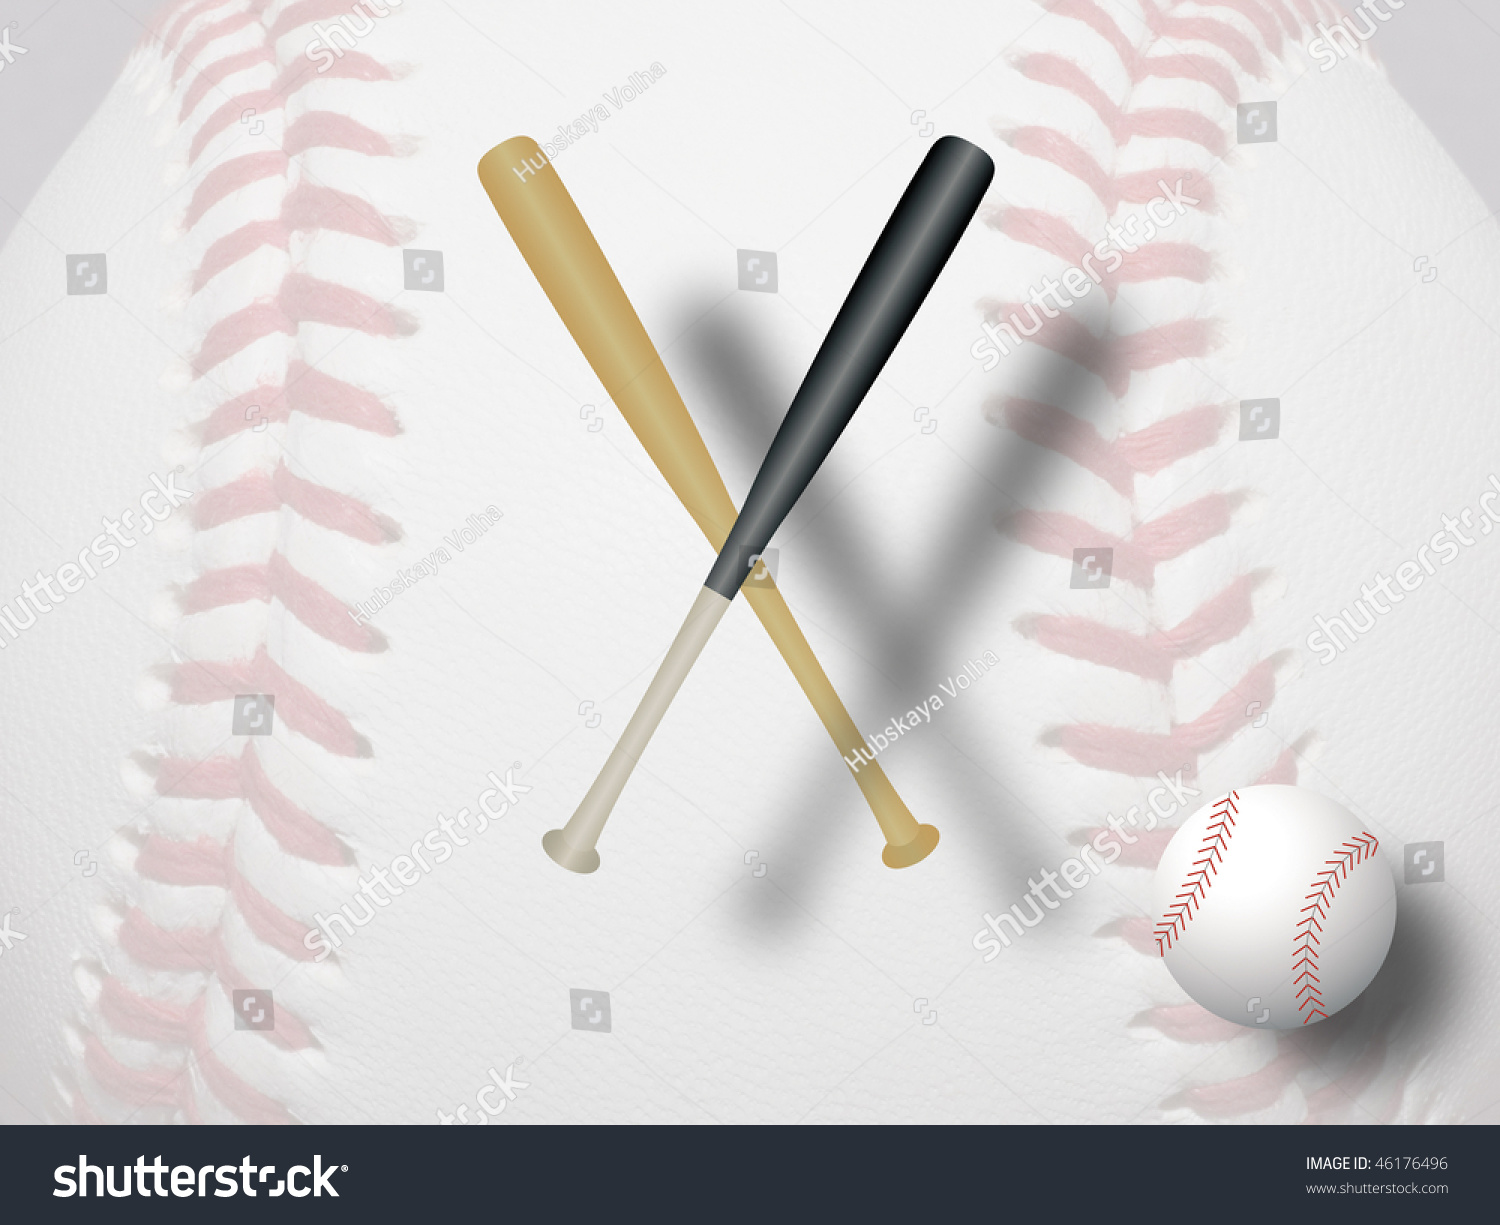 Baseball Equipment Ball Bat Ilustración de stock46176496: Shutterstock